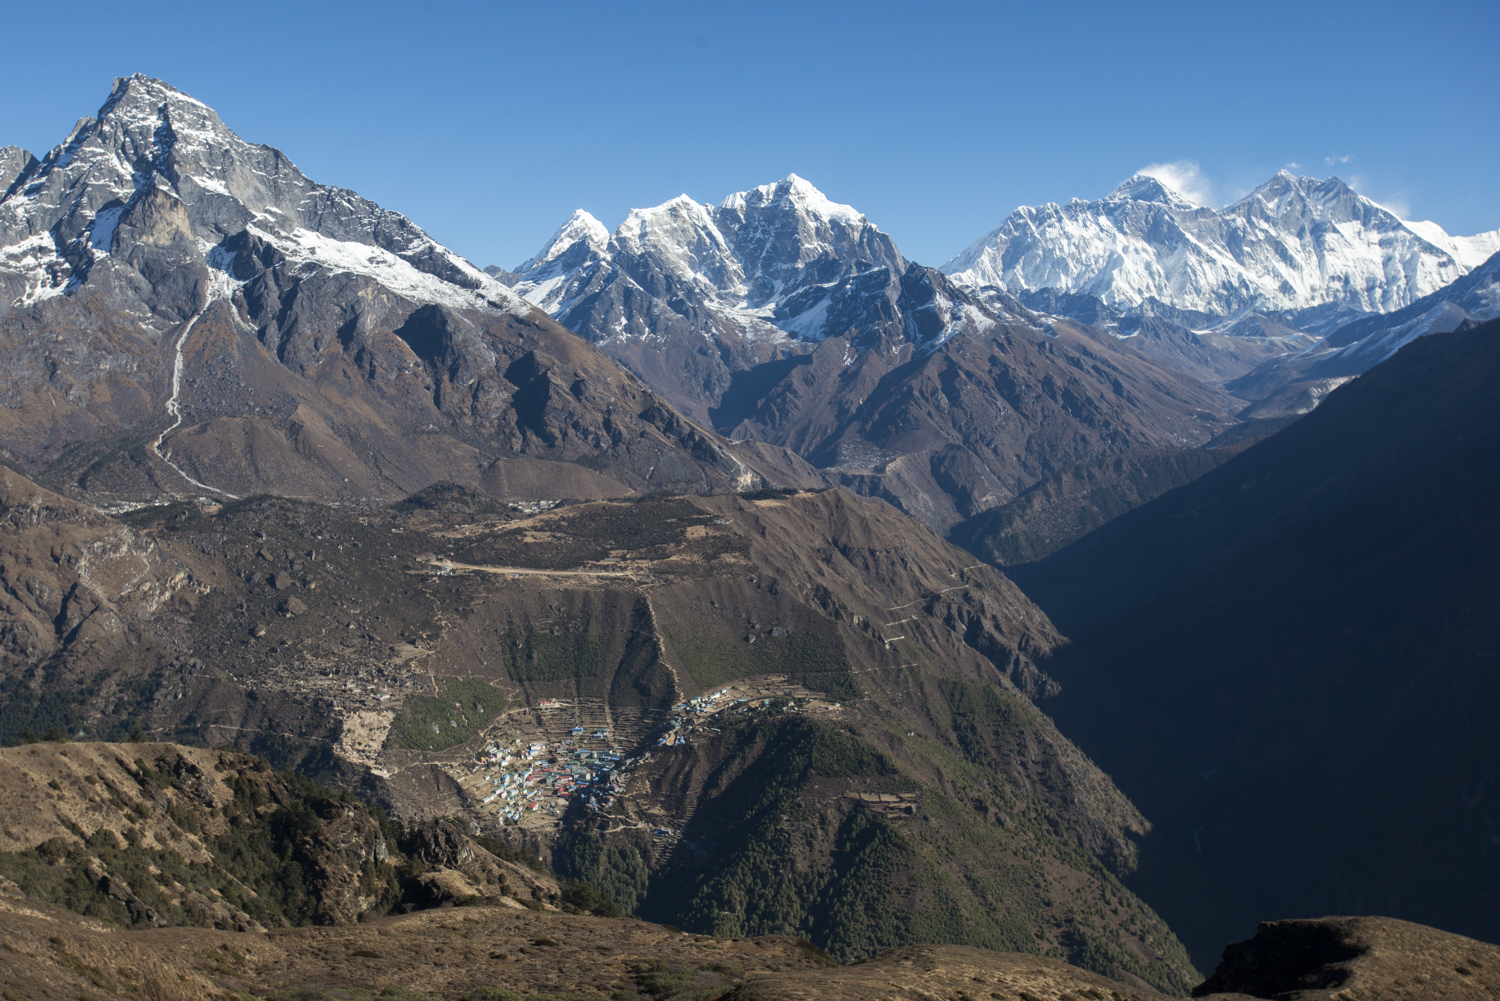 The view from Kongde Hotel to Namche Bazaar and Mt Everest